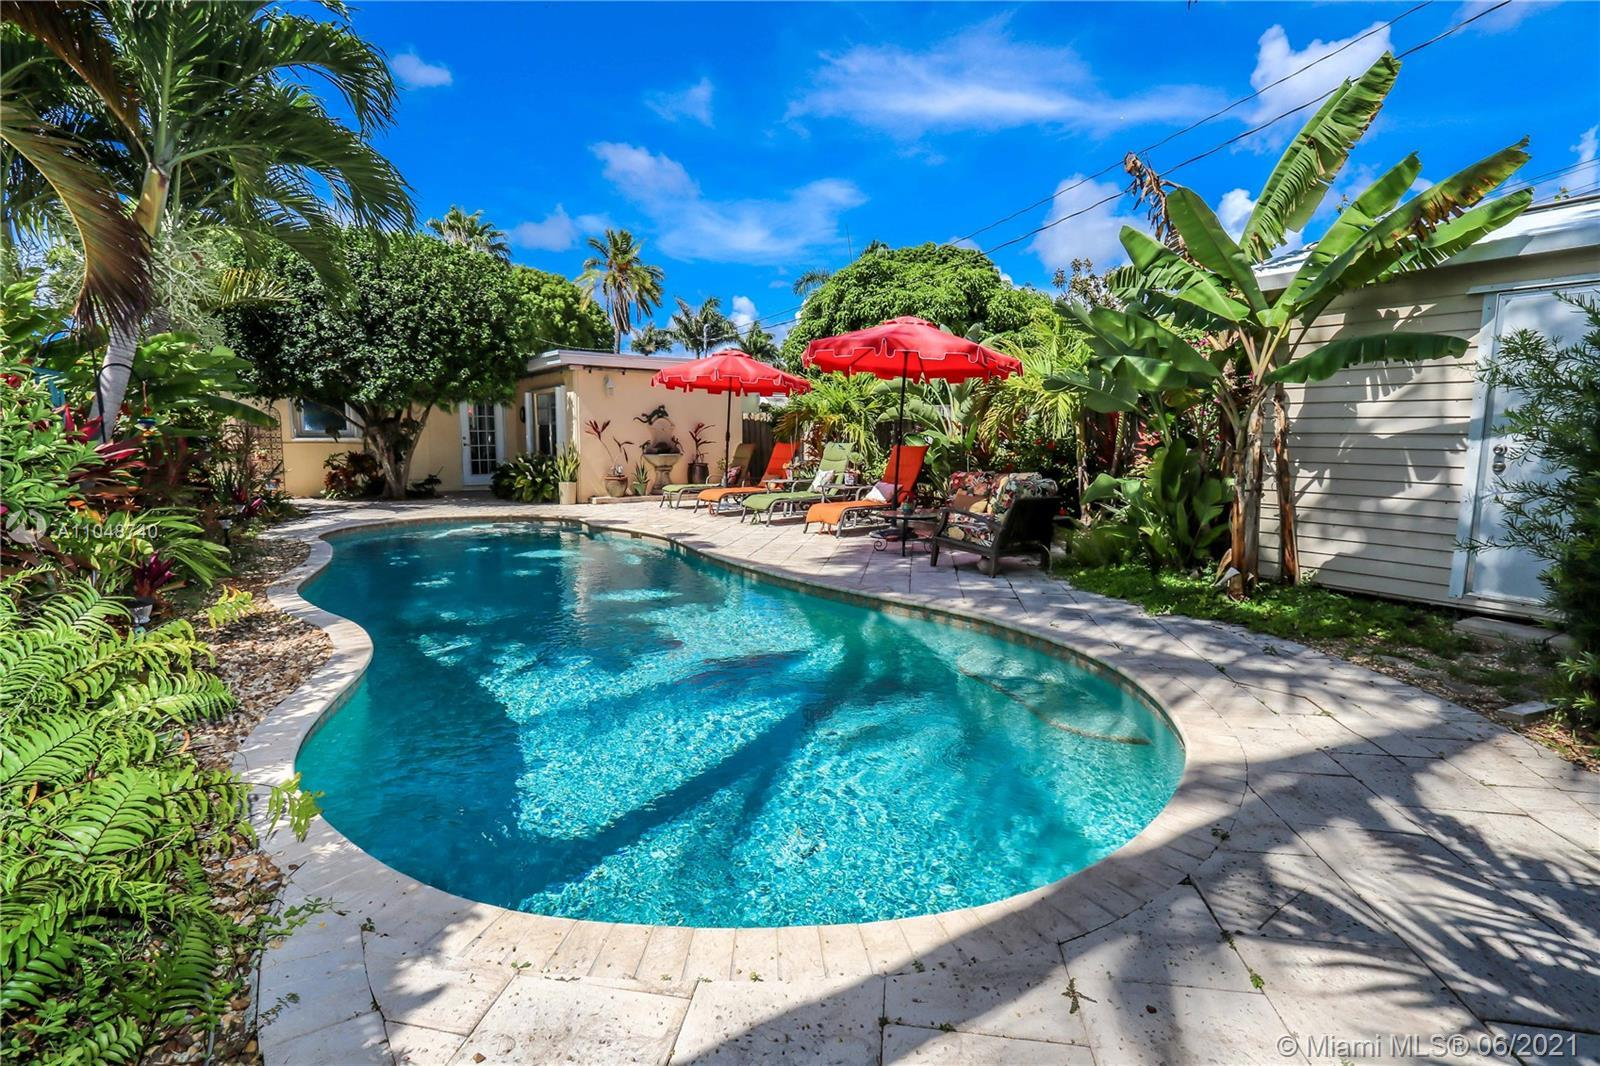 Charming Home ~ Tropical Paradise! In Desired Neighborhood.....East of US1!  3 BD / 2 BA Home with a